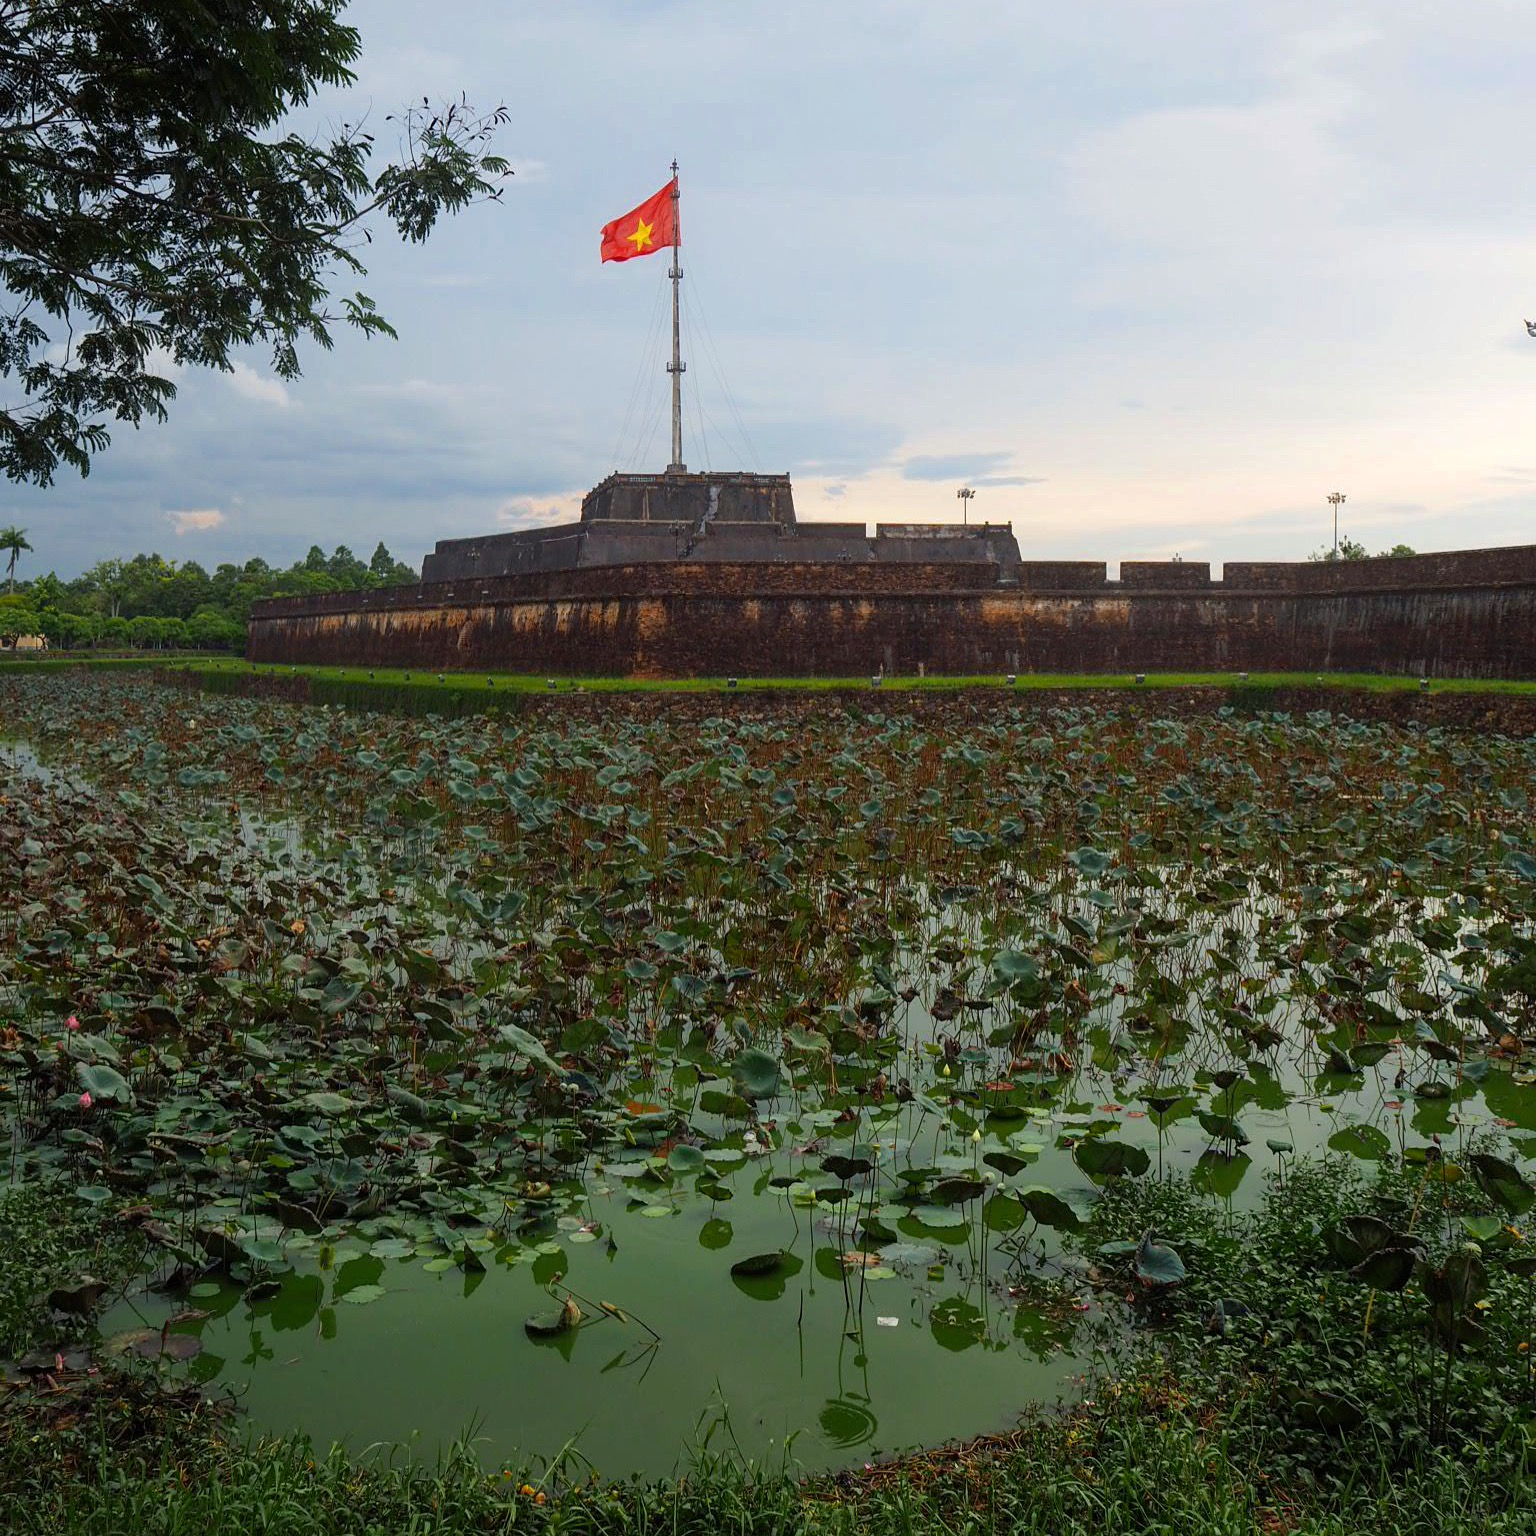 The outer walls and moat of Hué's Citadel